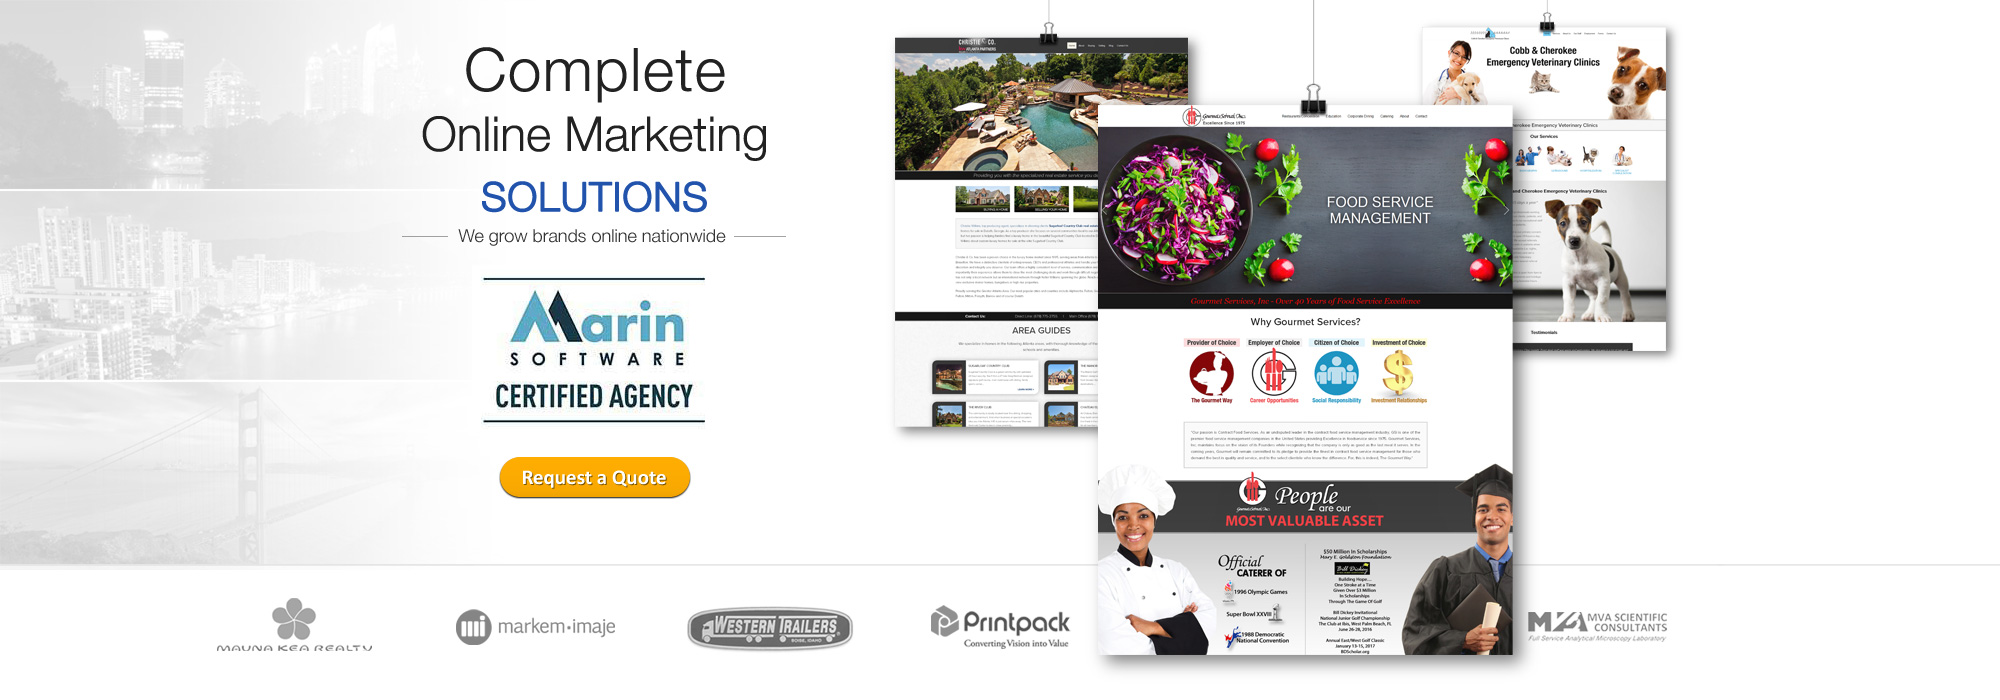 Complete Online Marketing Solutions